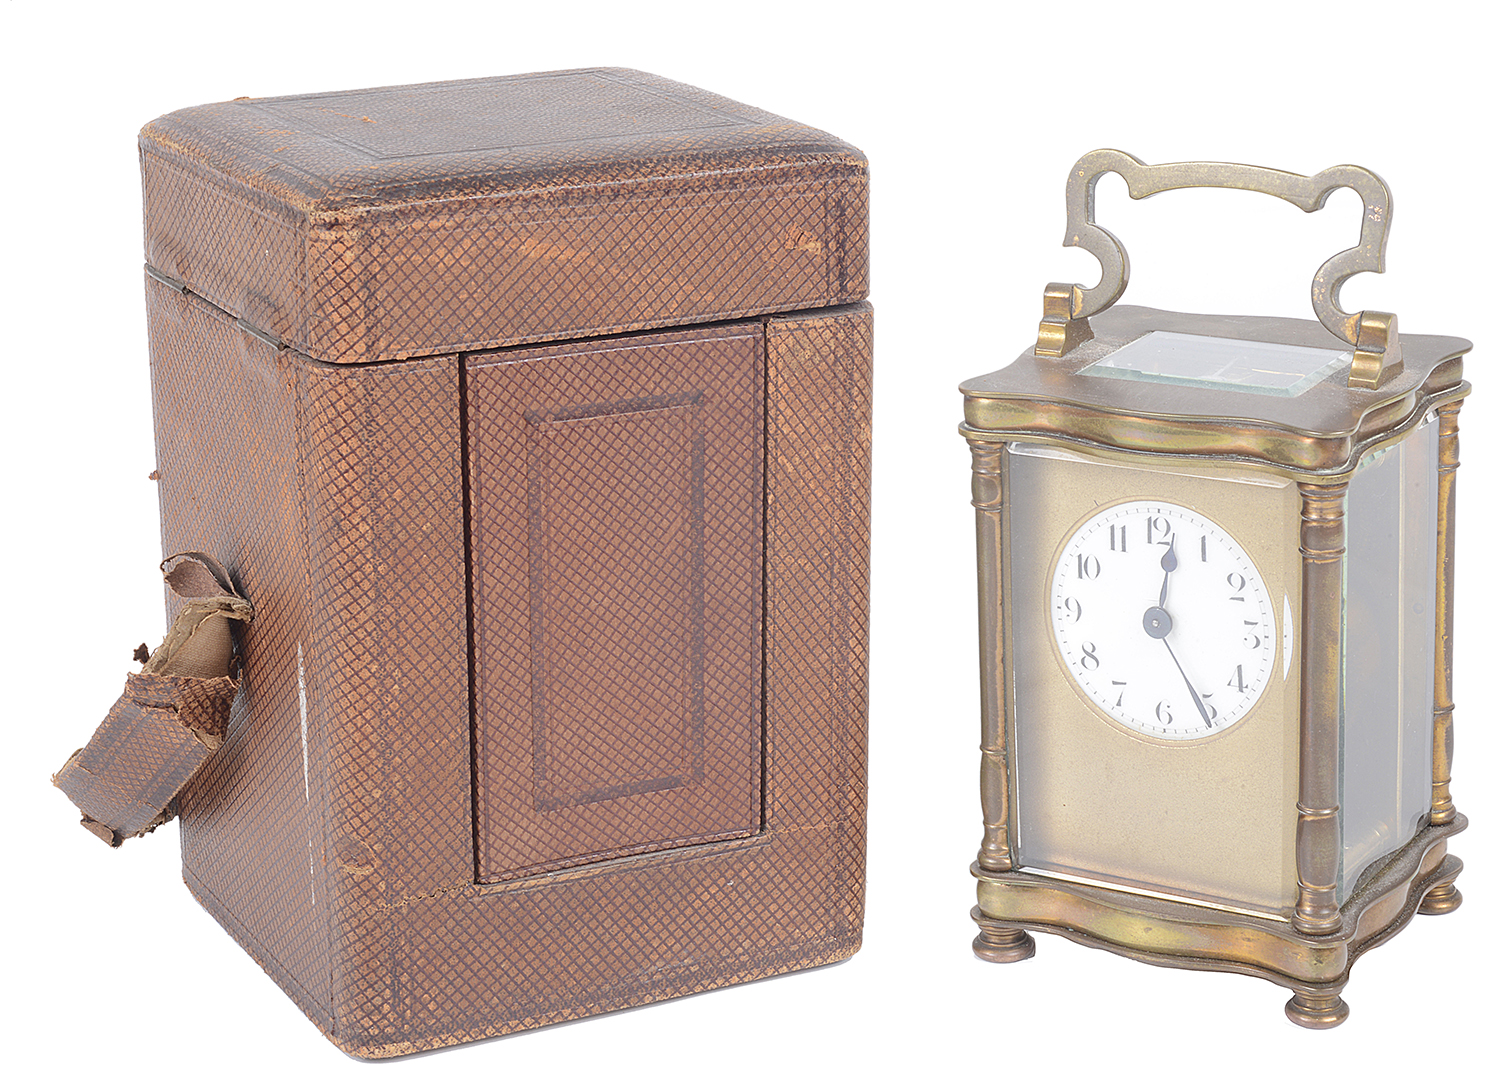 Lot 36 - A late 19th century brass carriage clock